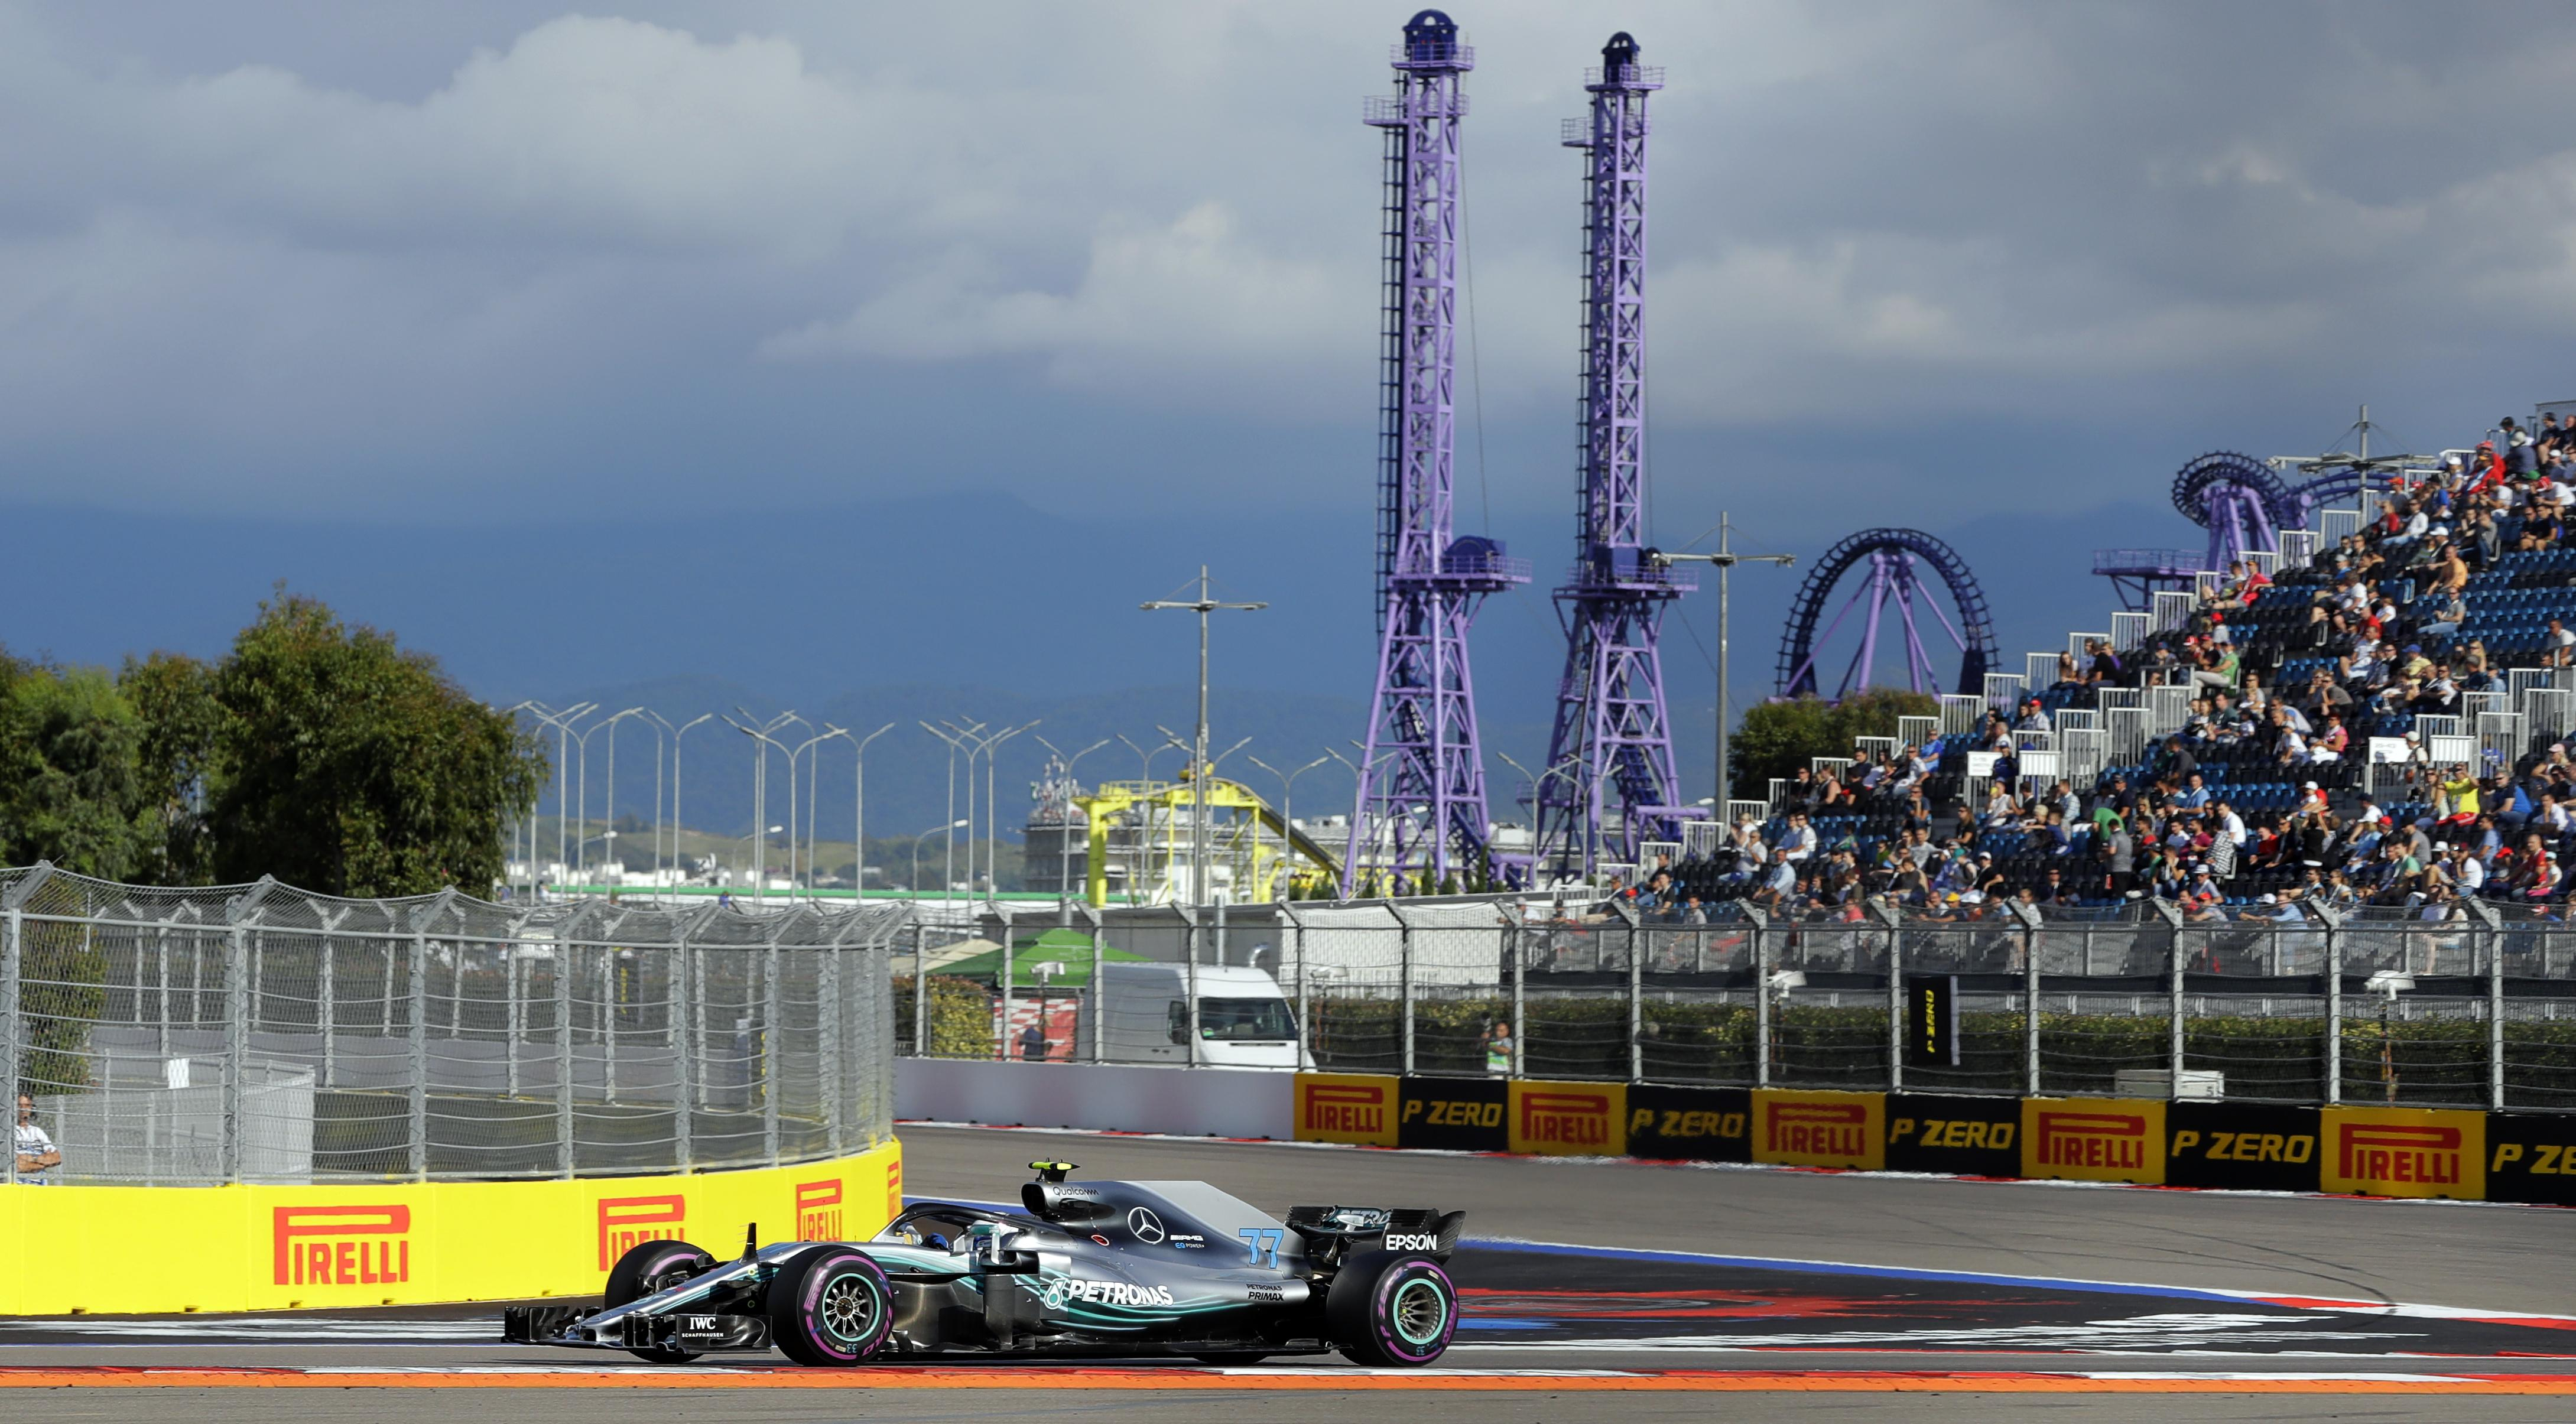 Mercedes have been dominant all weekend in Russia